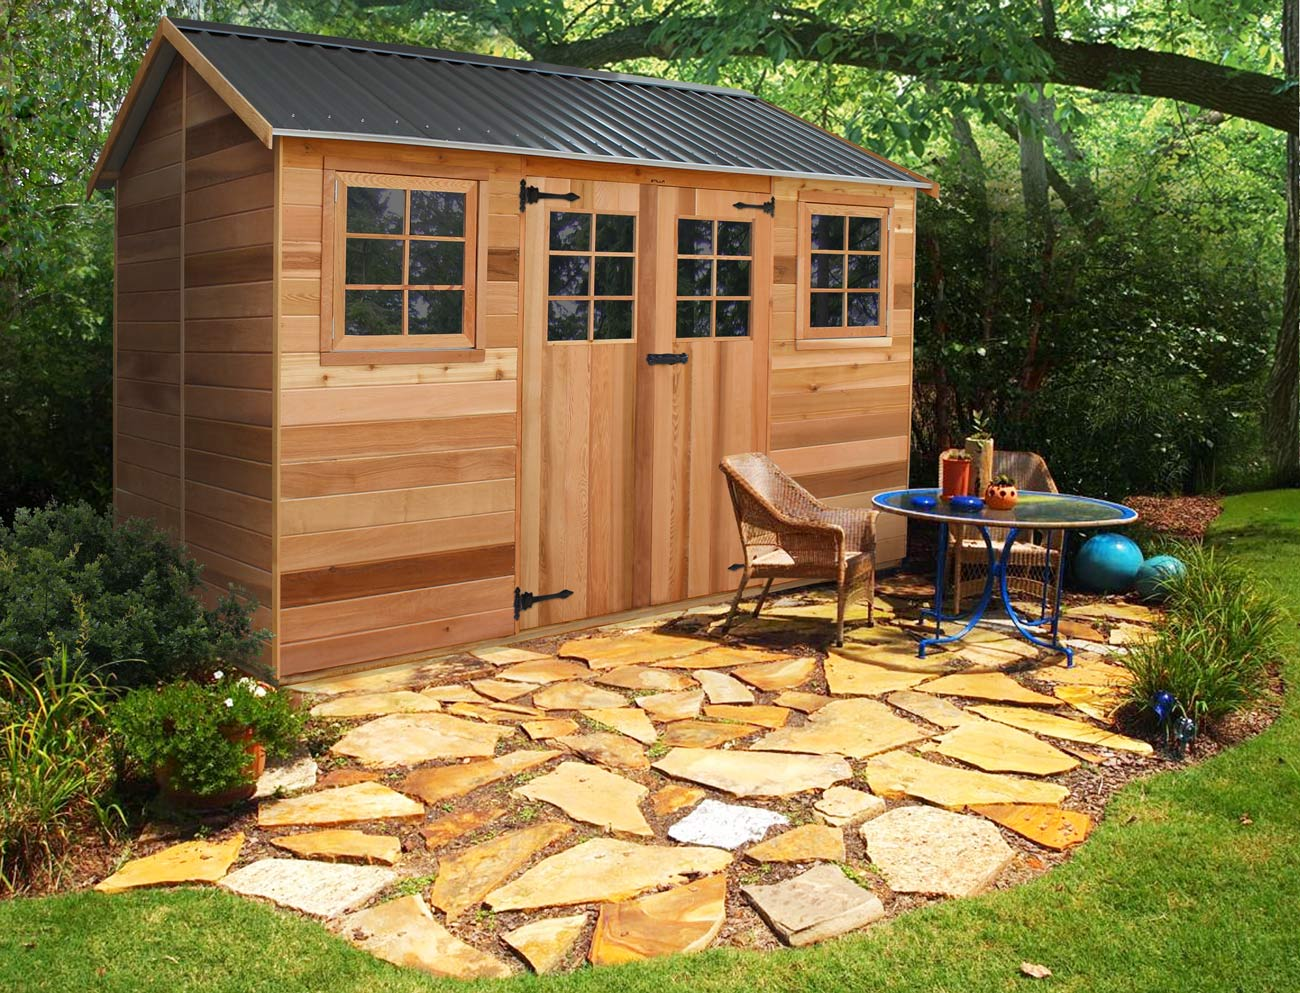 Cedar Shed Maple 12x6ft 3 6mx1 9m 2 825 00 Landera